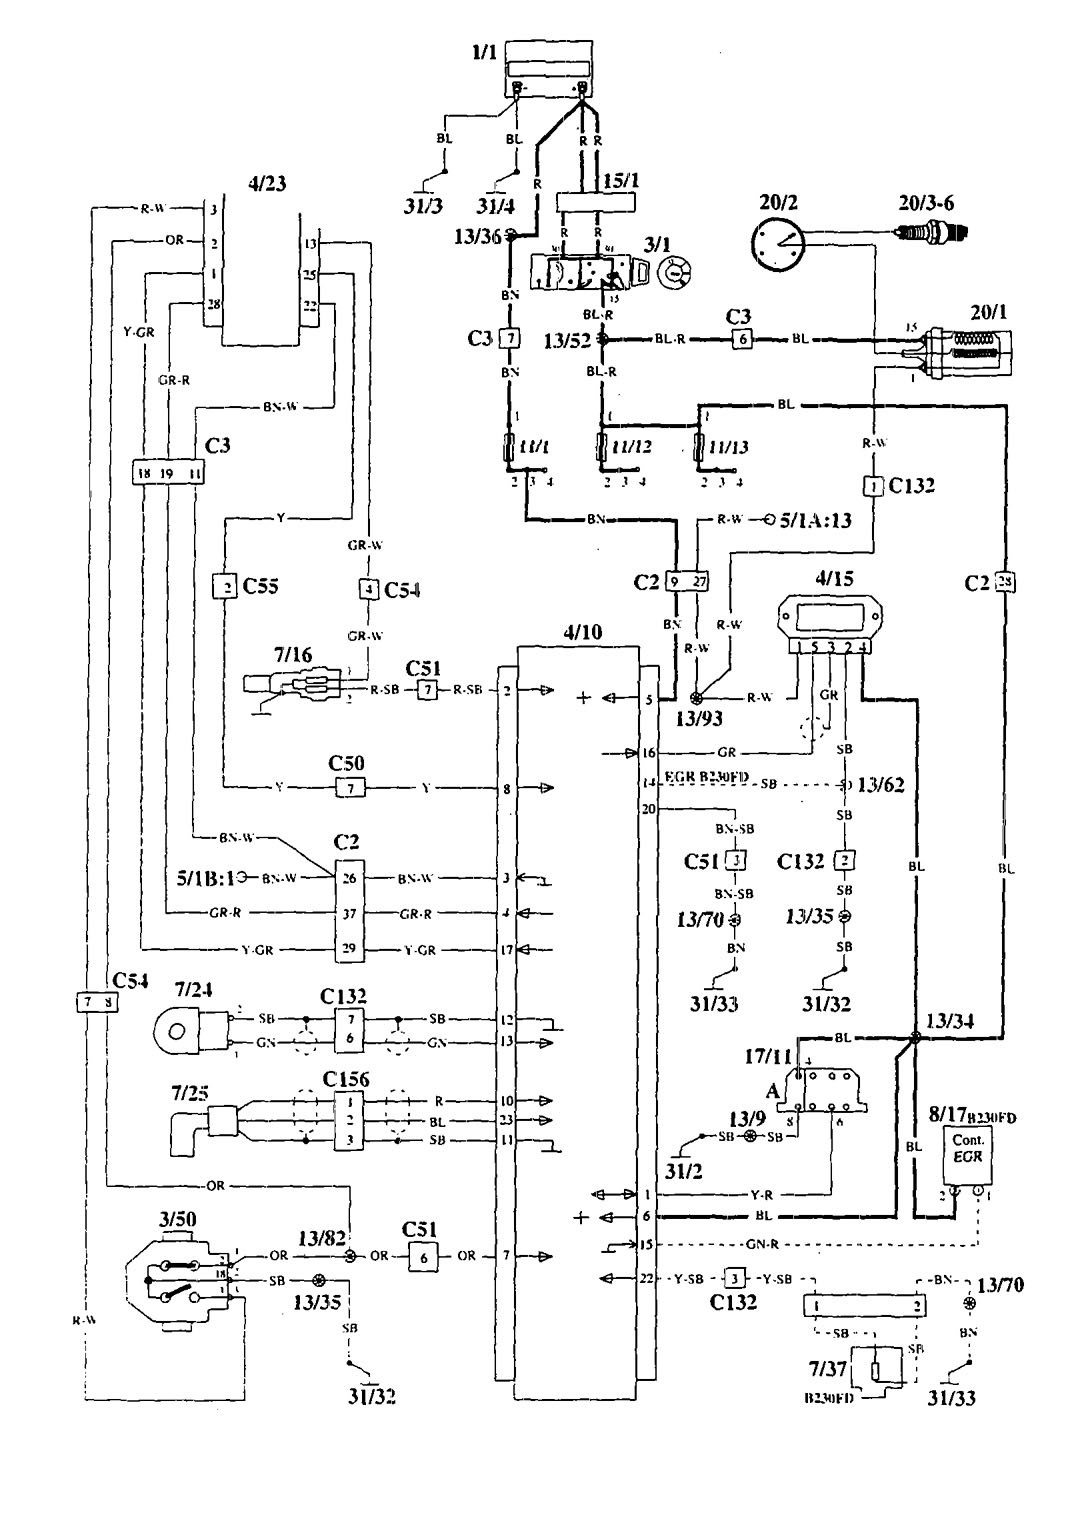 Volvo 940 (1995) - wiring diagrams - ignition ...